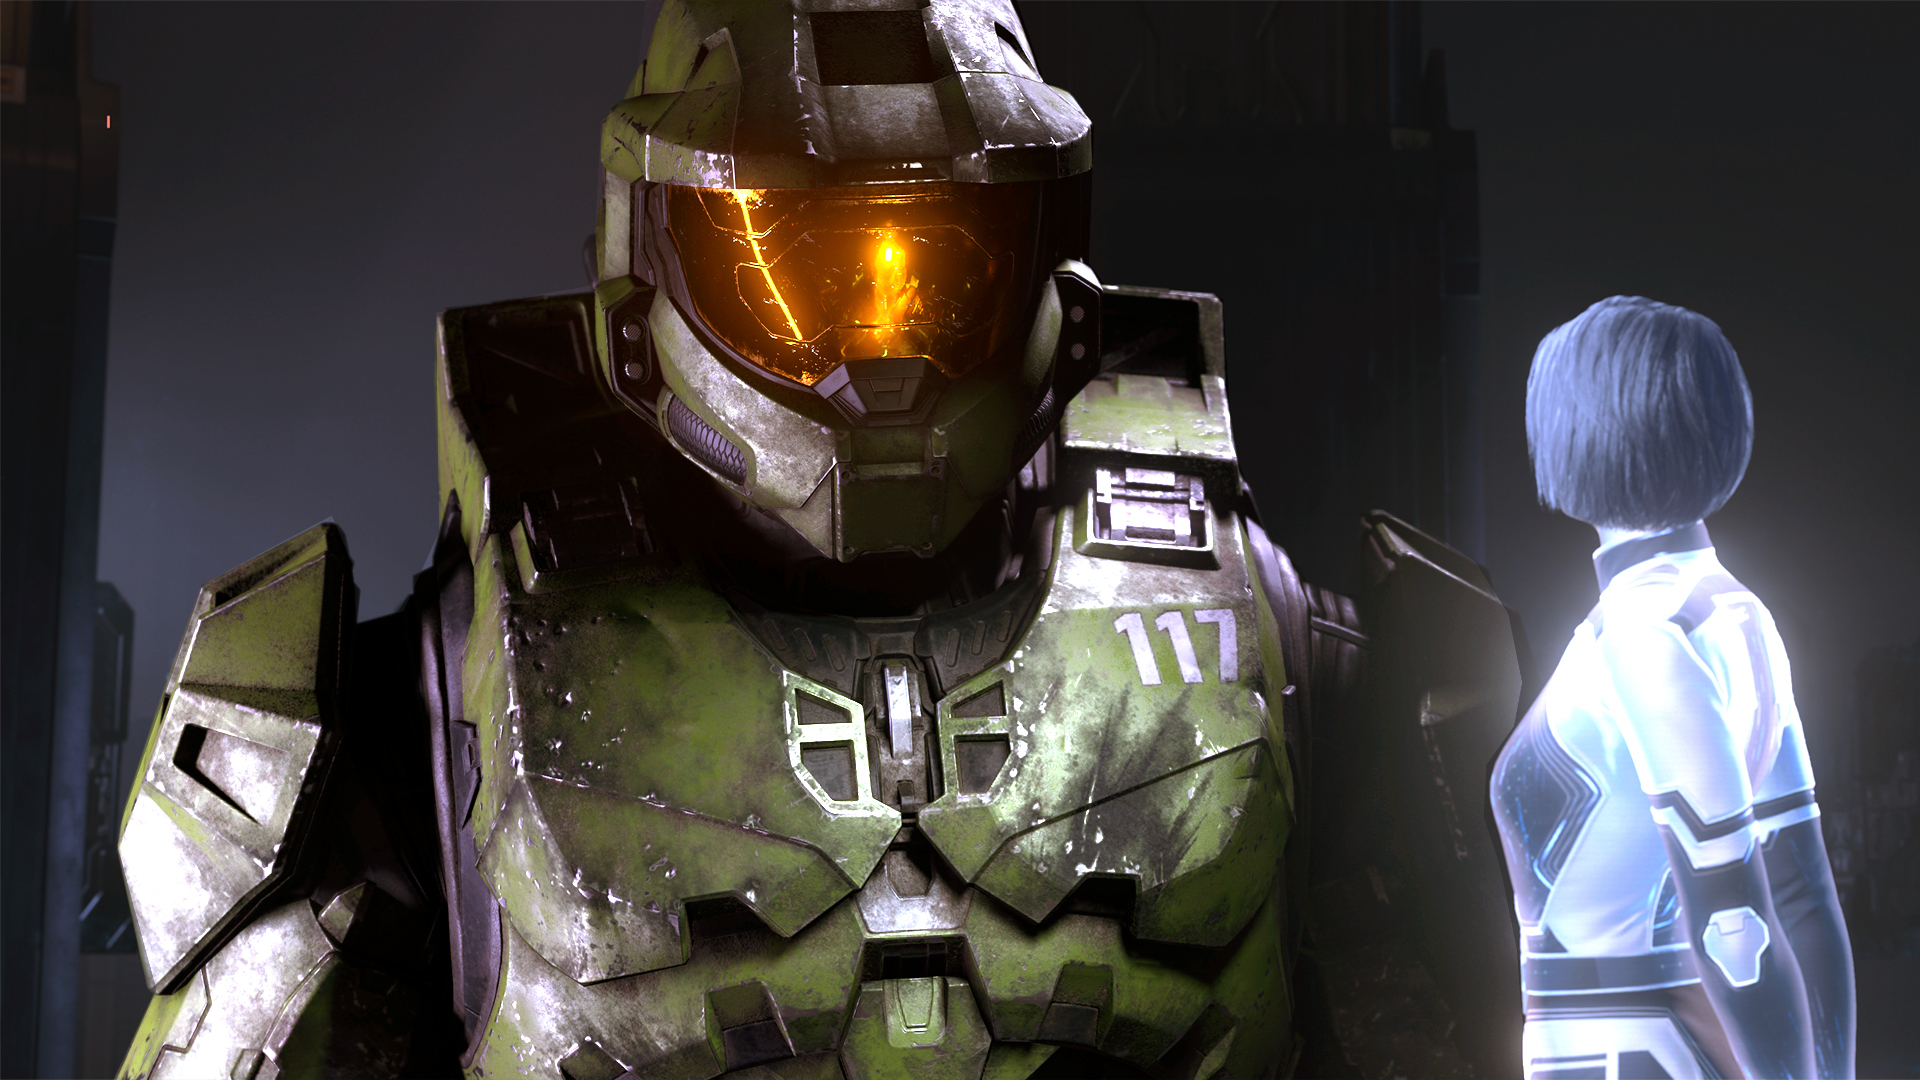 Halo Infinite beta leaks multiple campaigns and story spoilers